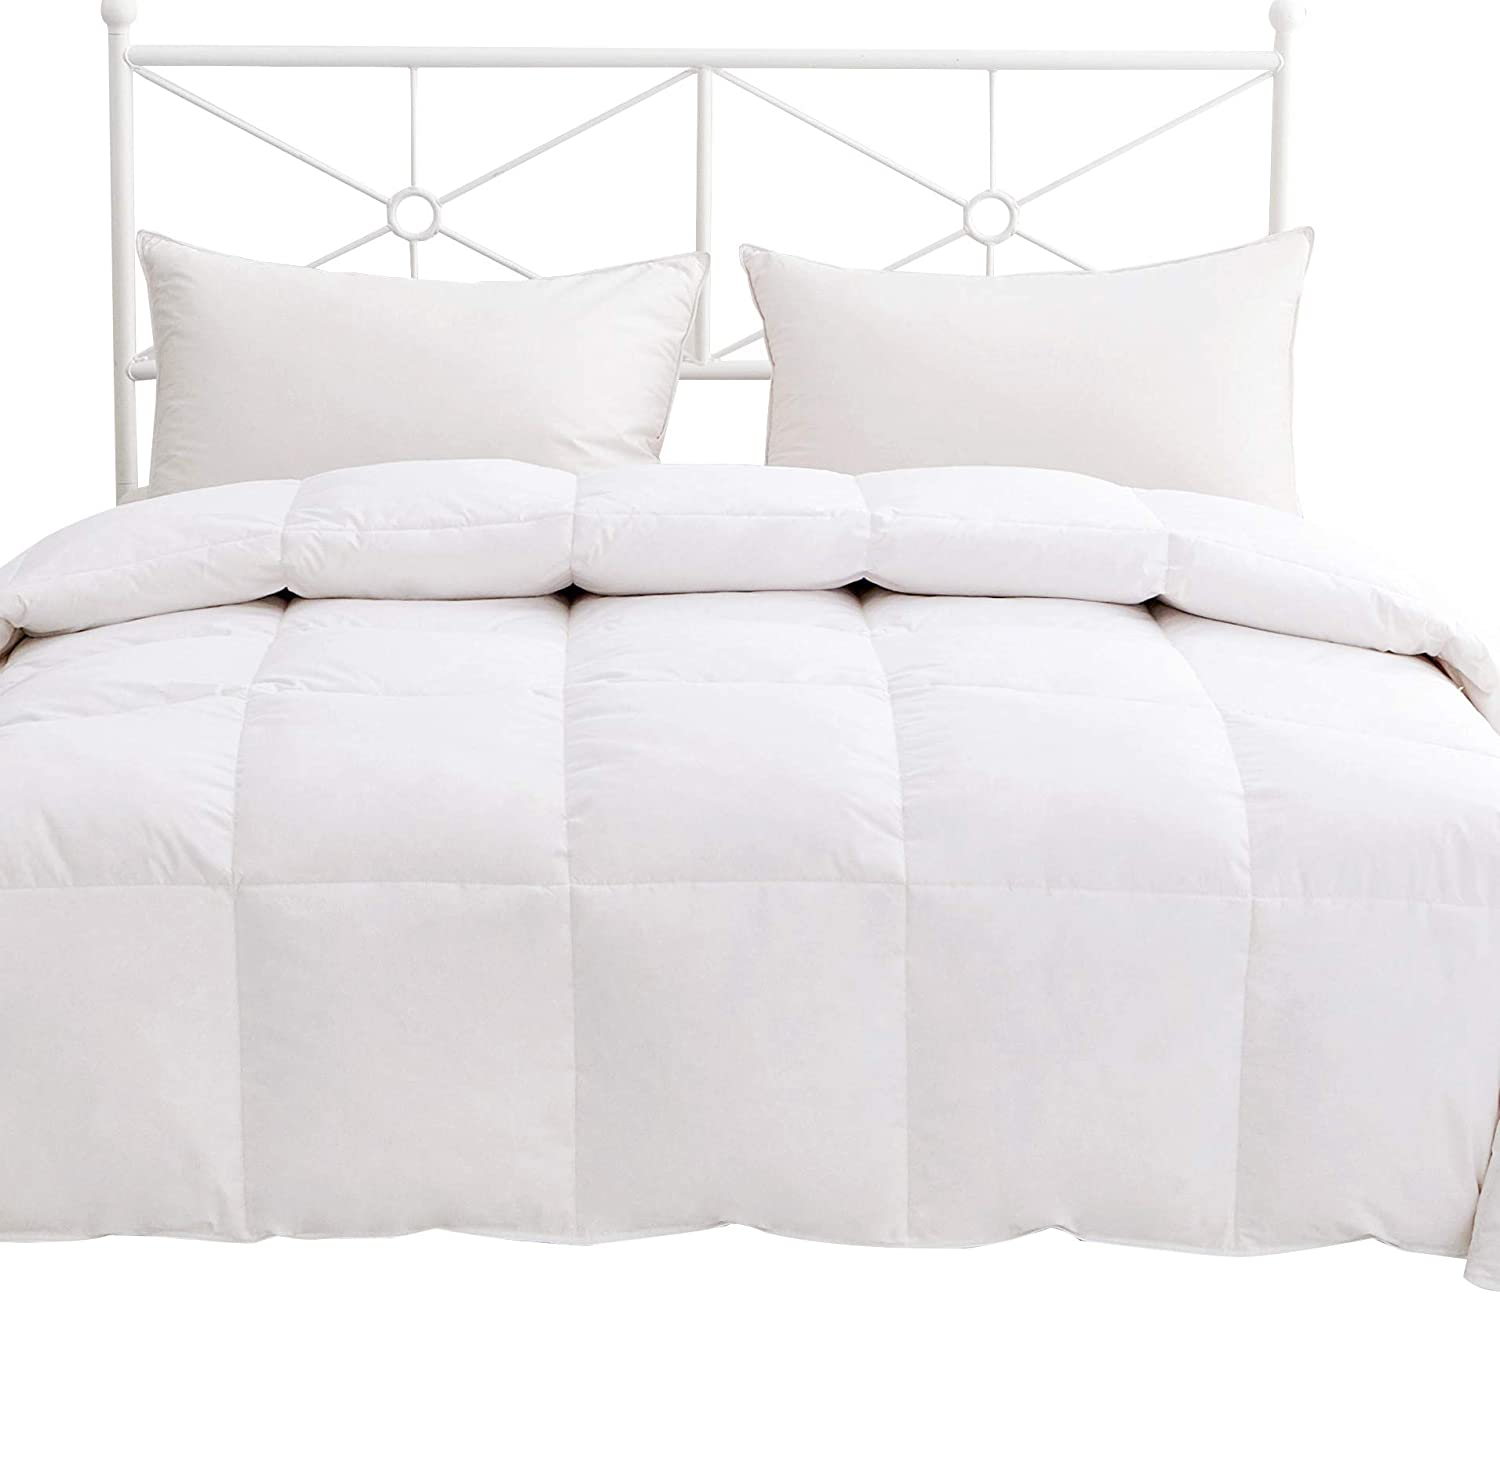 Homefocus Single Bed Duvet - Luxury White Goose Feather & Down Duvet/Quilt, 13.5 Tog, 100% Cotton Shell, Anti-dust mite & Feather-proof Fabric Anti-allergen